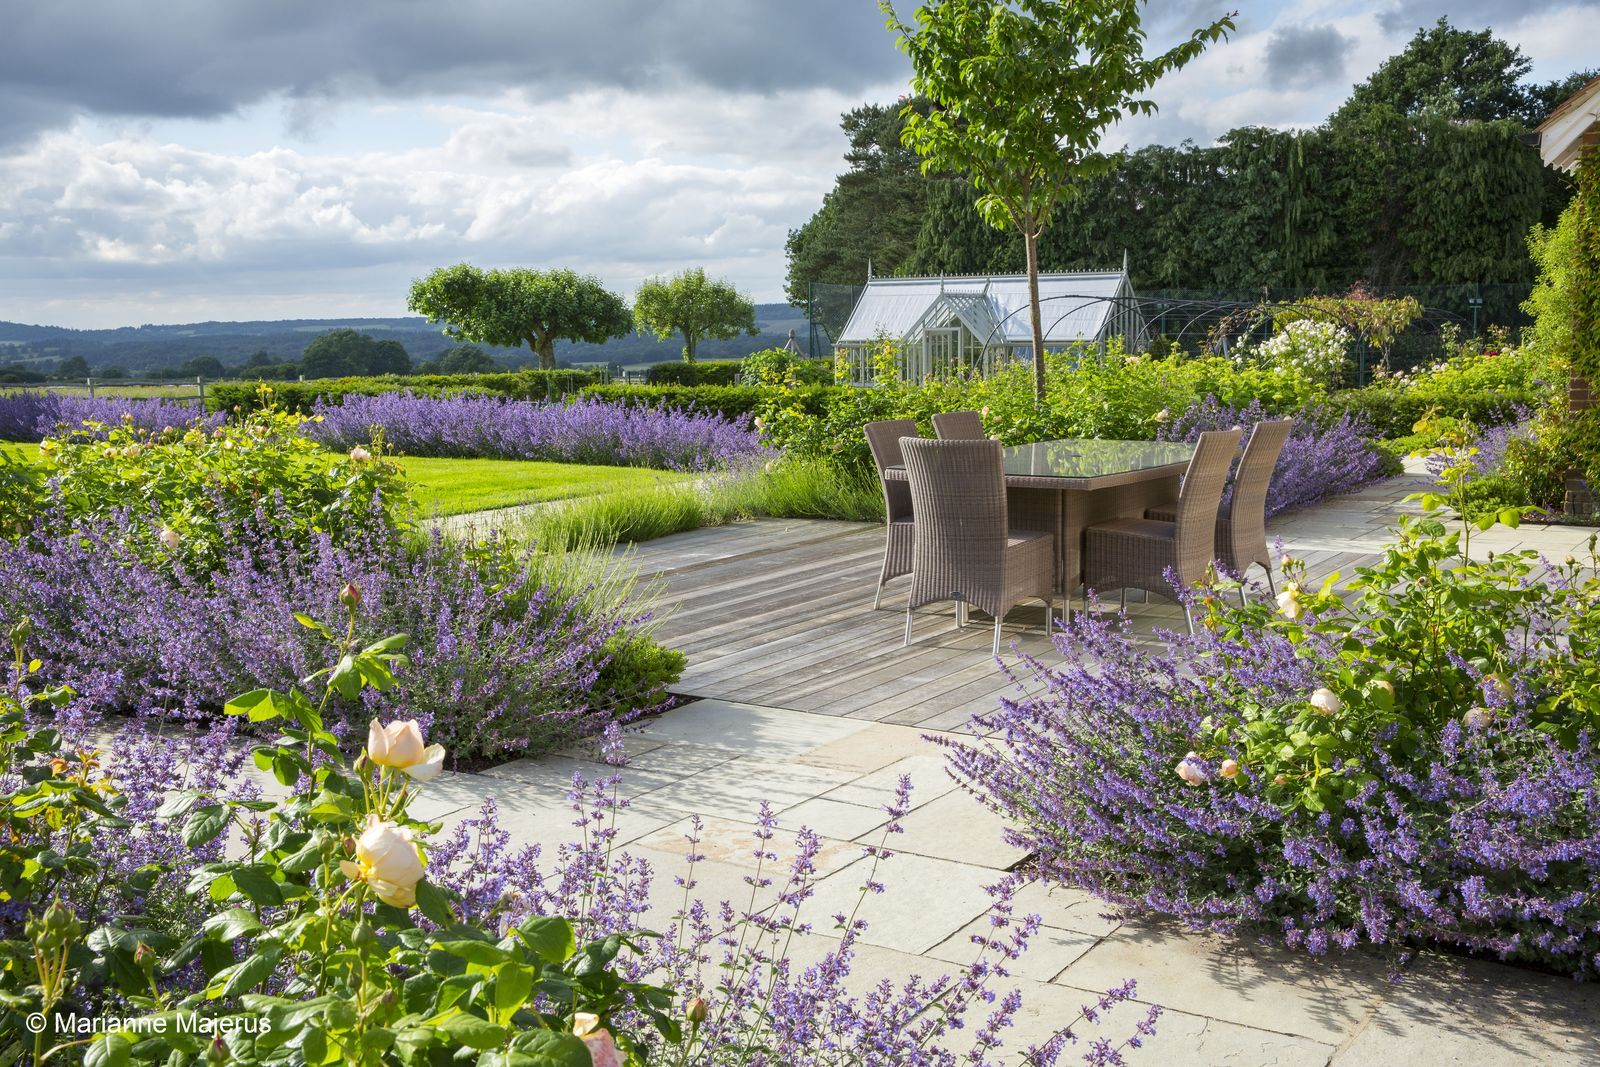 The best garden designs and landscapes have been celebrated at the